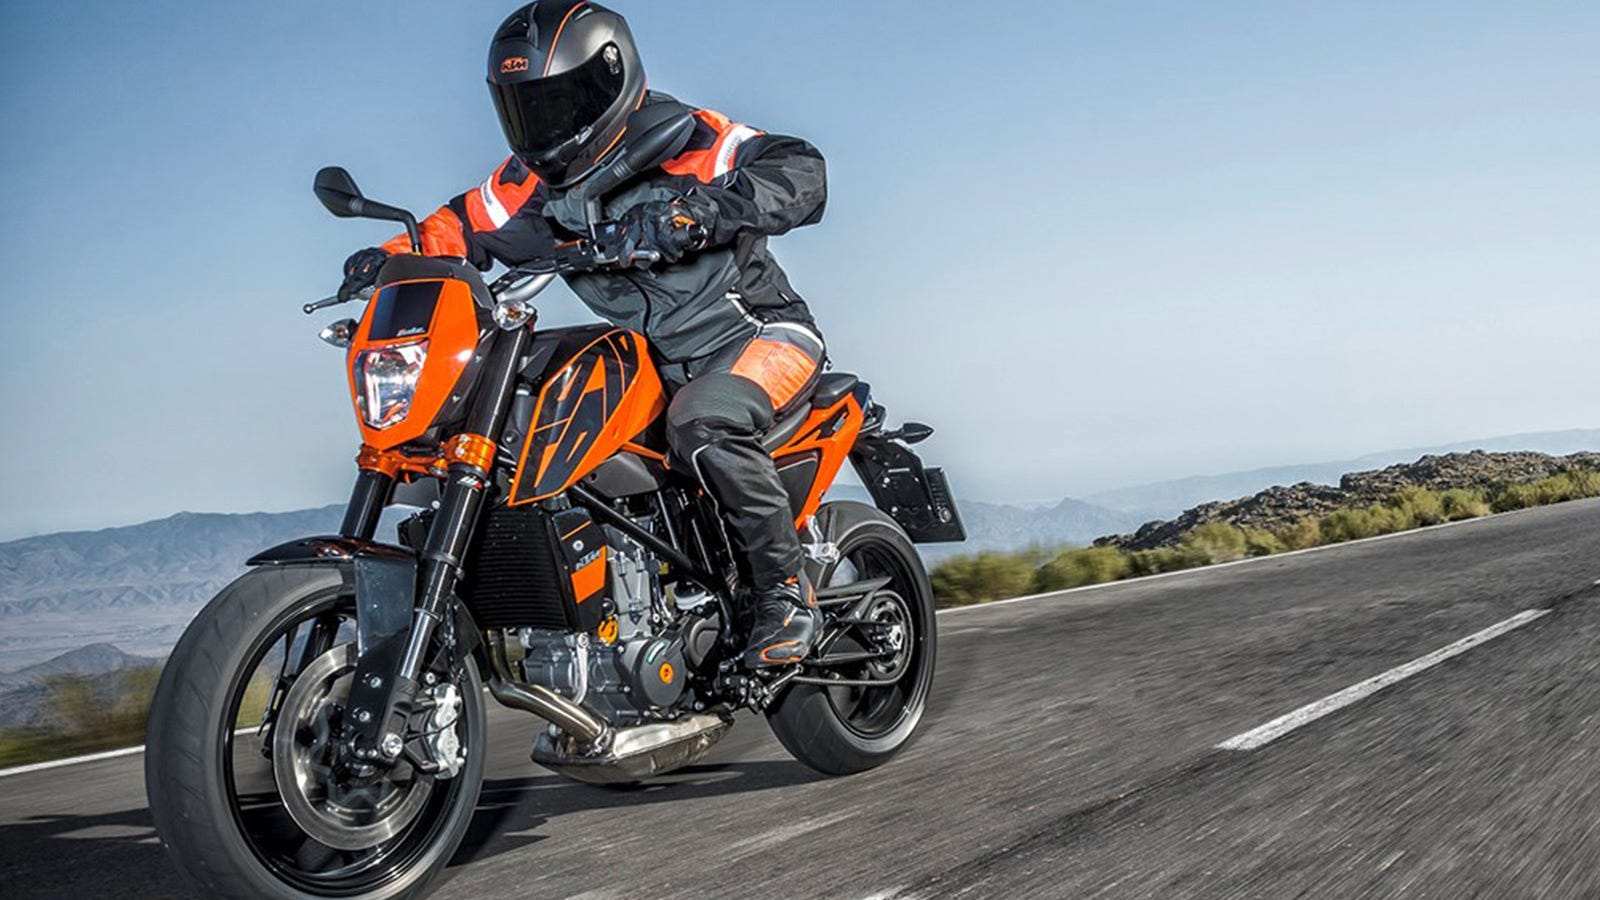 Ktm Duke Abs Price